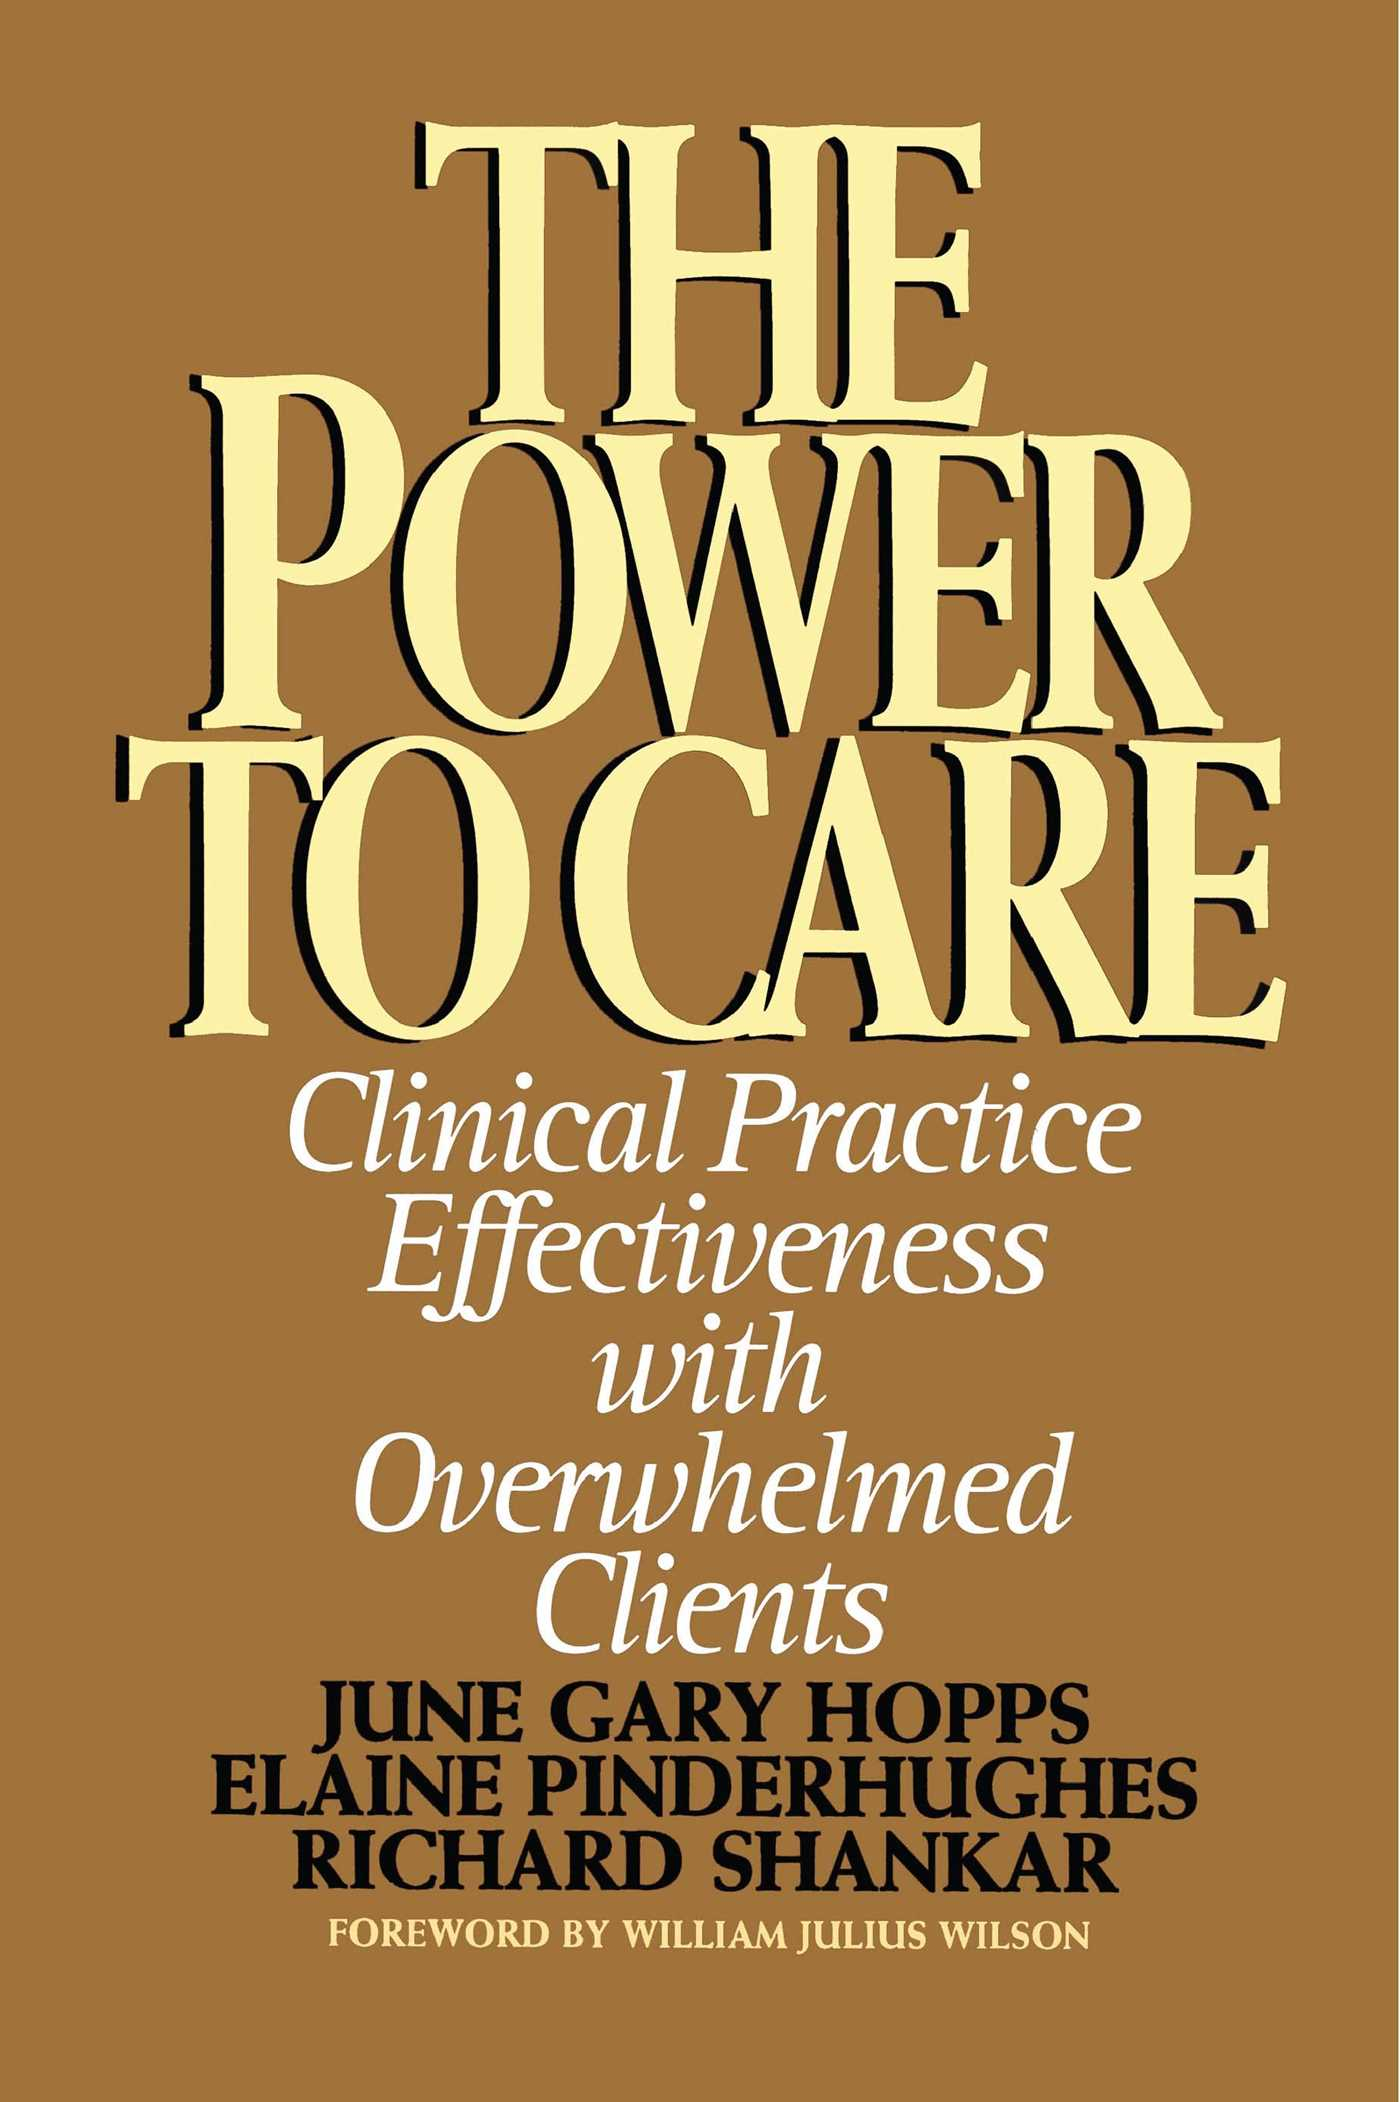 Power to care 9781416576389 hr